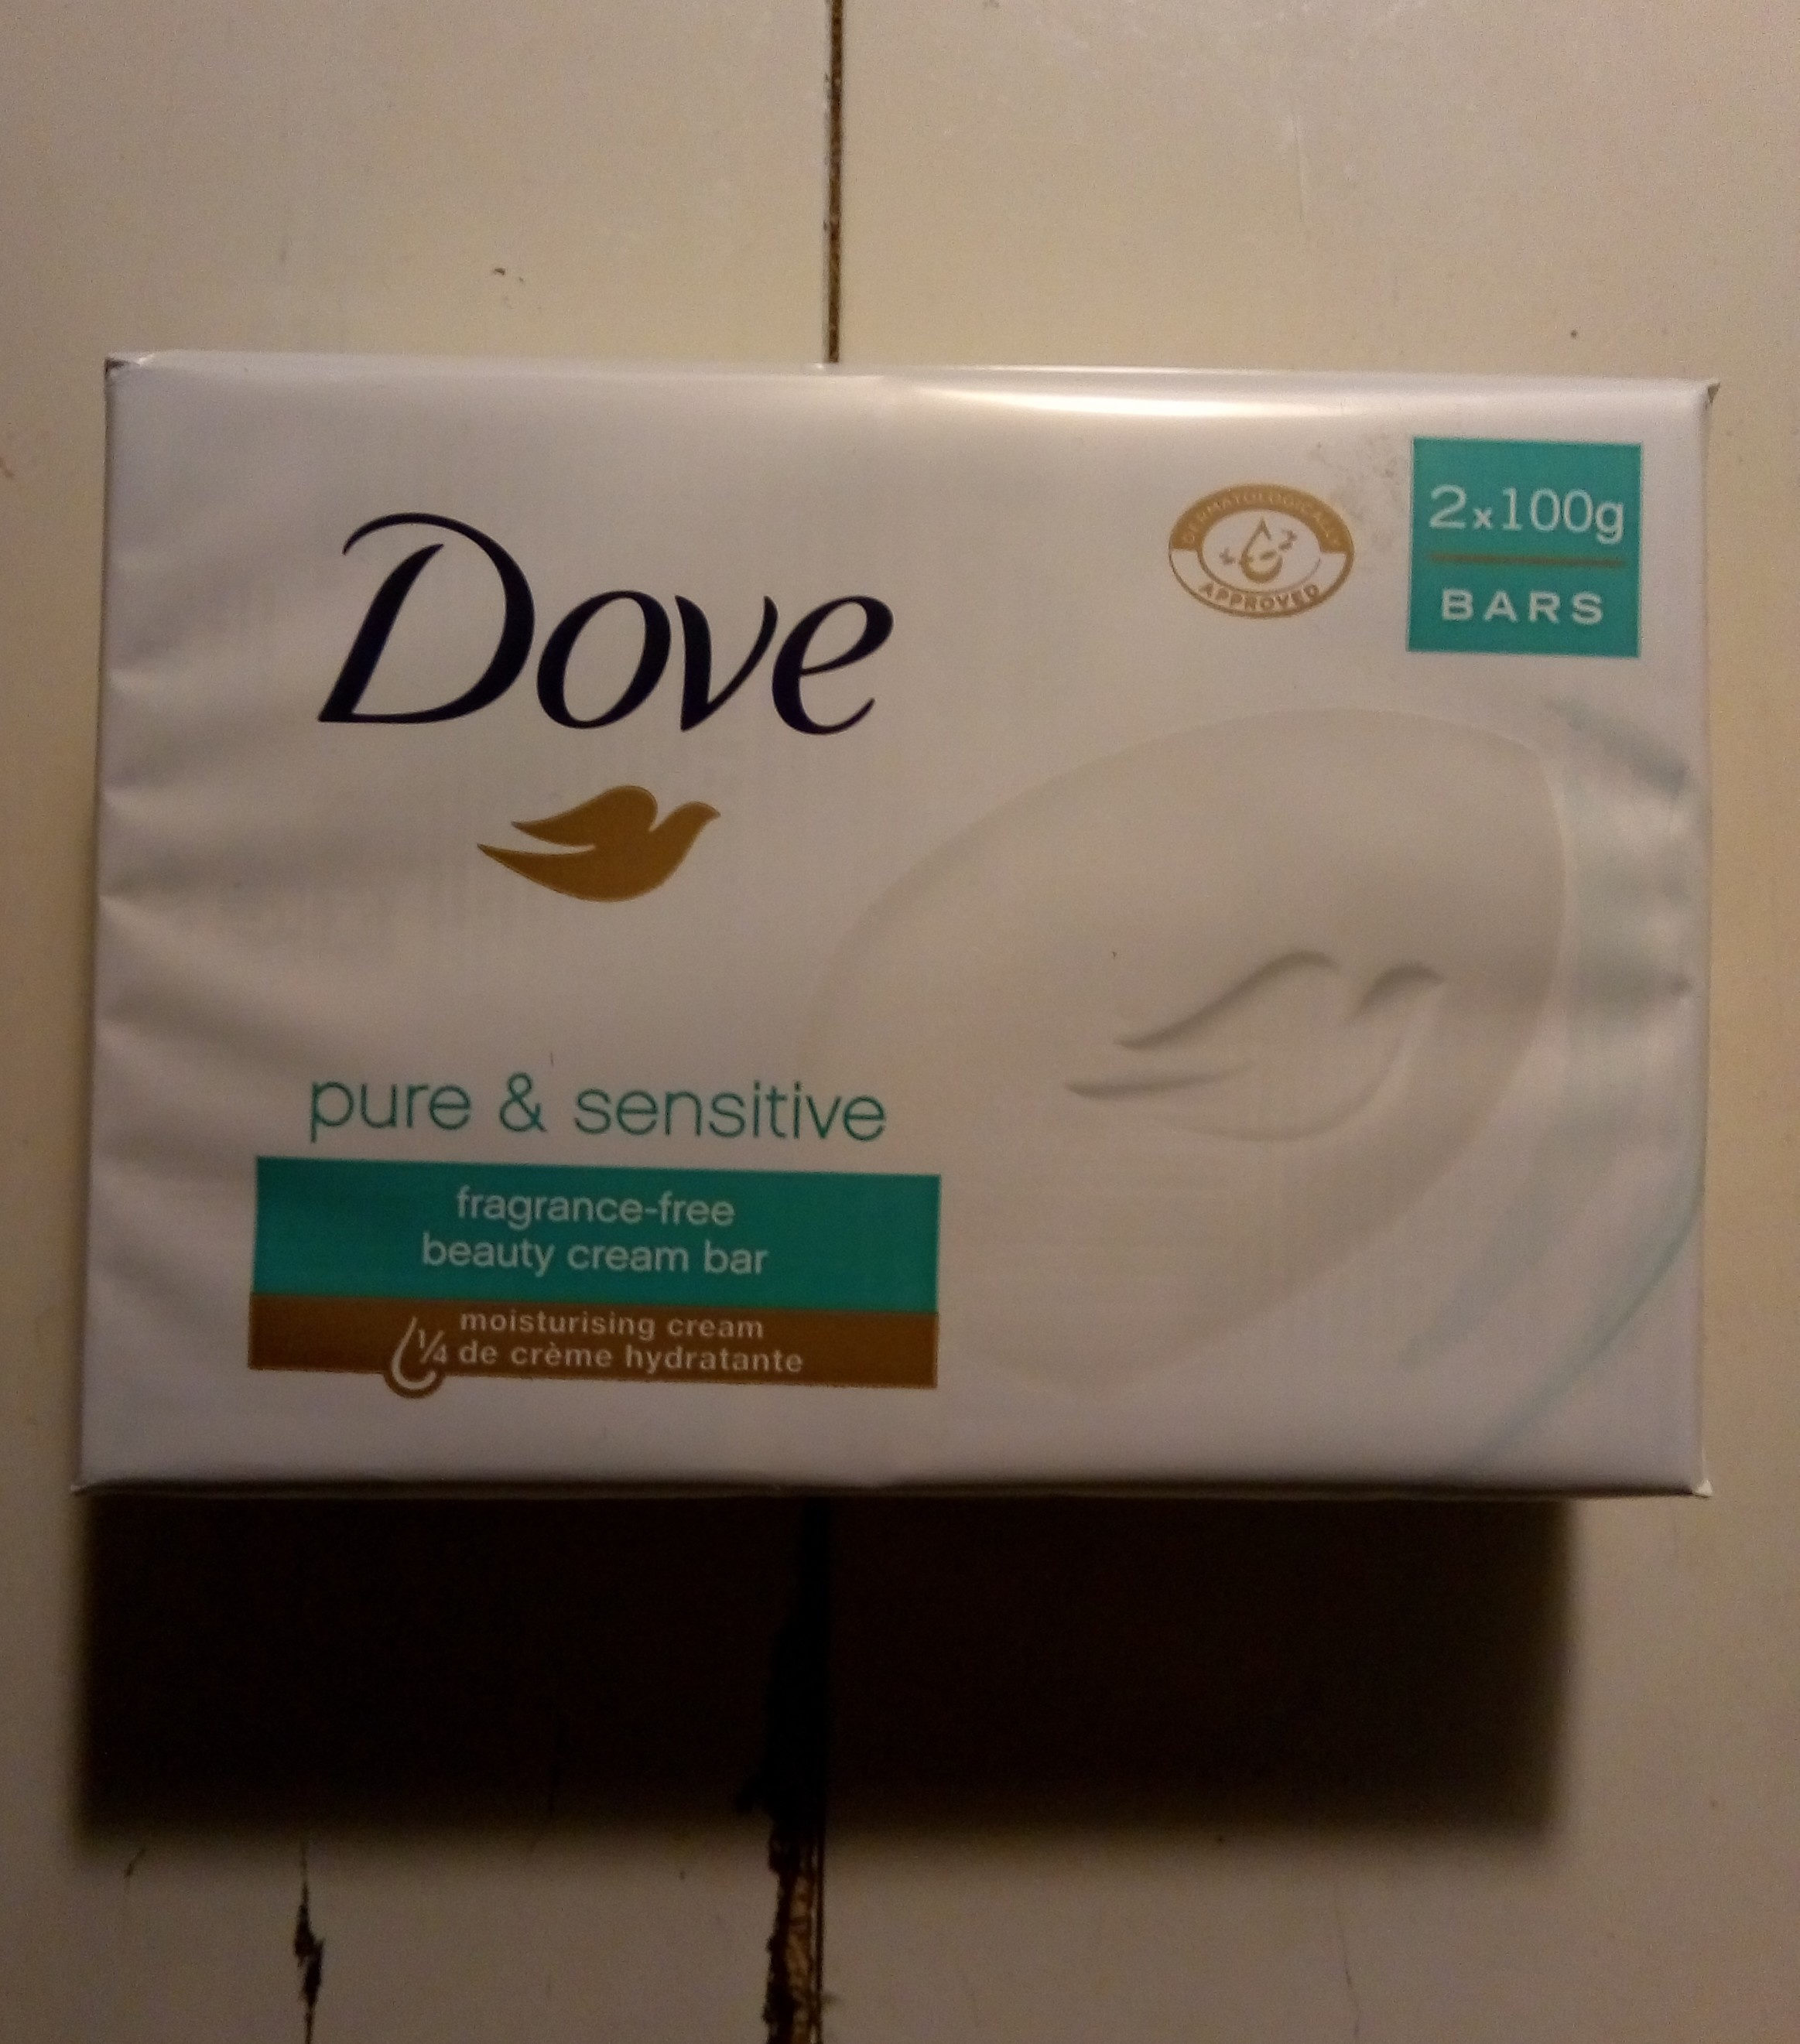 Dove pure & sensitive - Product